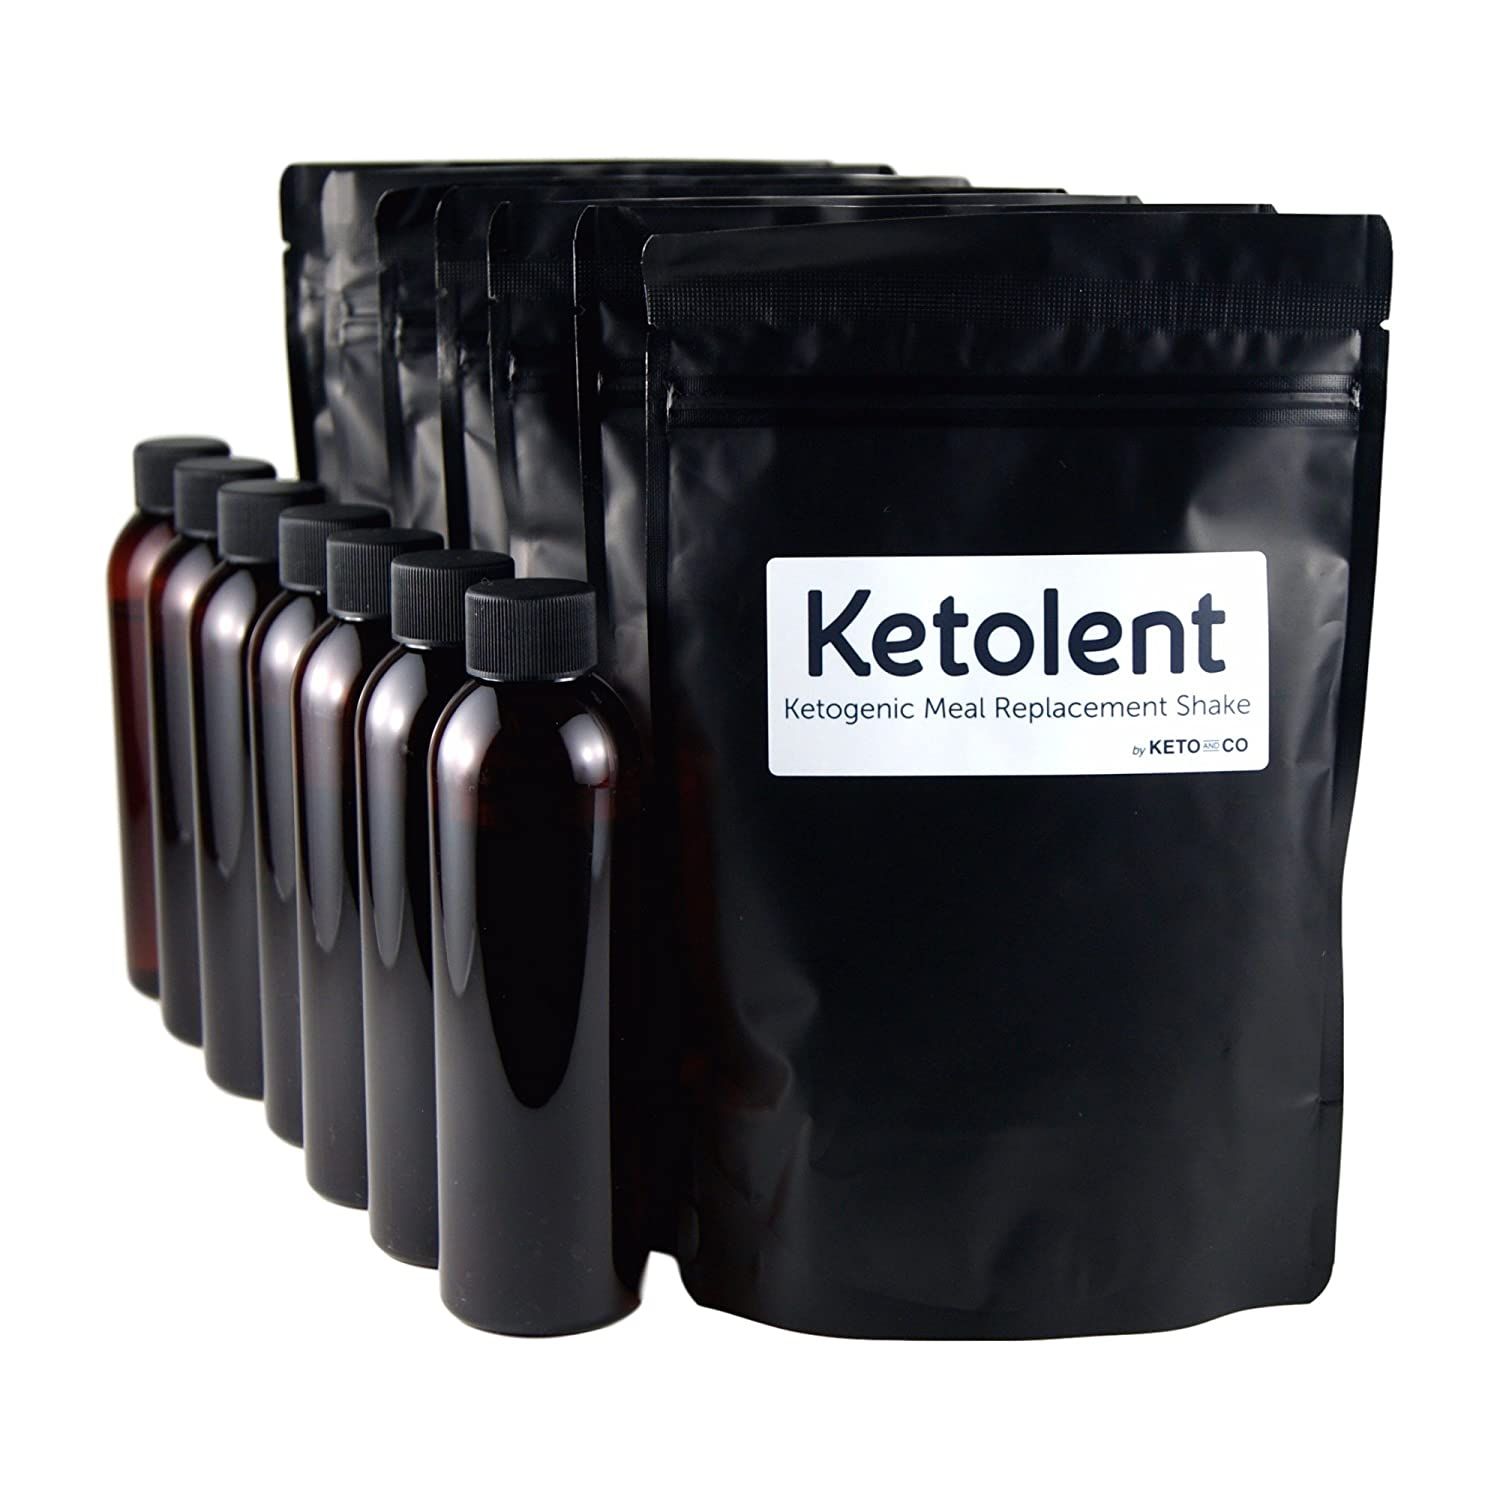 Ketolent nutritionally complete ketogenic low carb shake (Chocolate - 35 Meals)